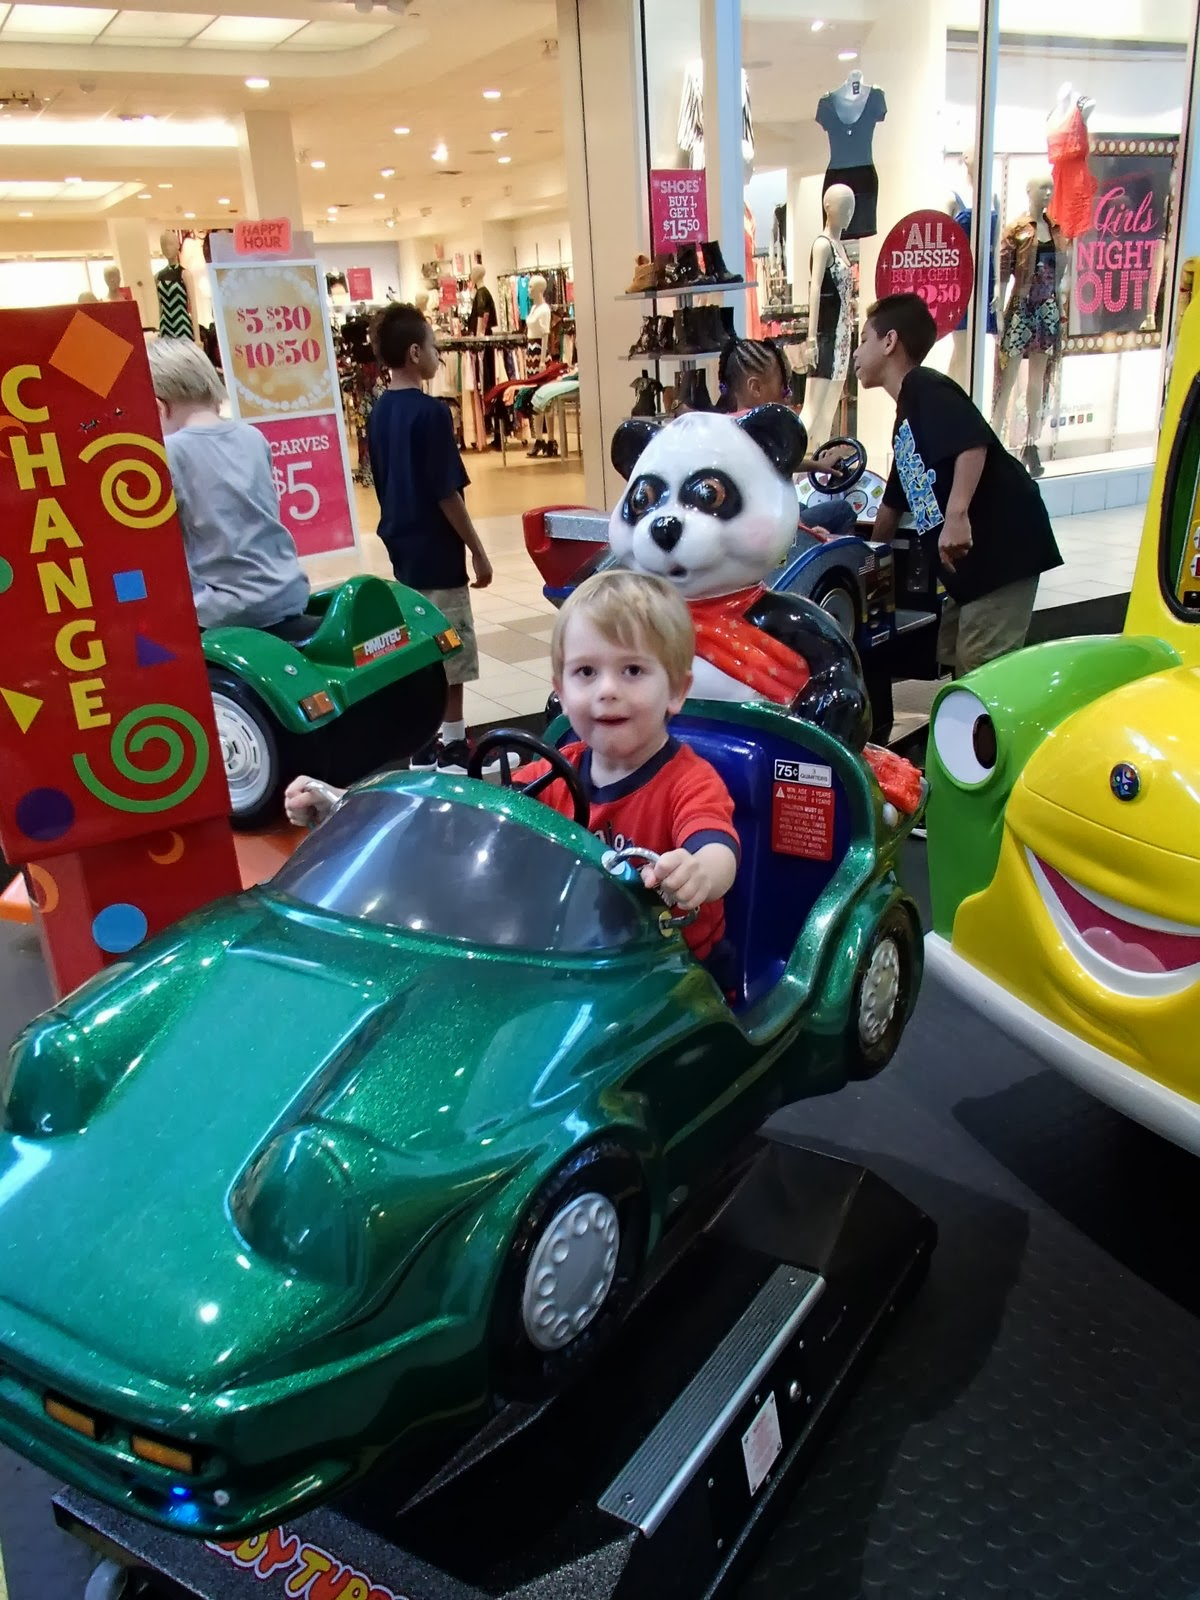 1000  images about Rides in Mall on Pinterest | Coins, Shopping ...